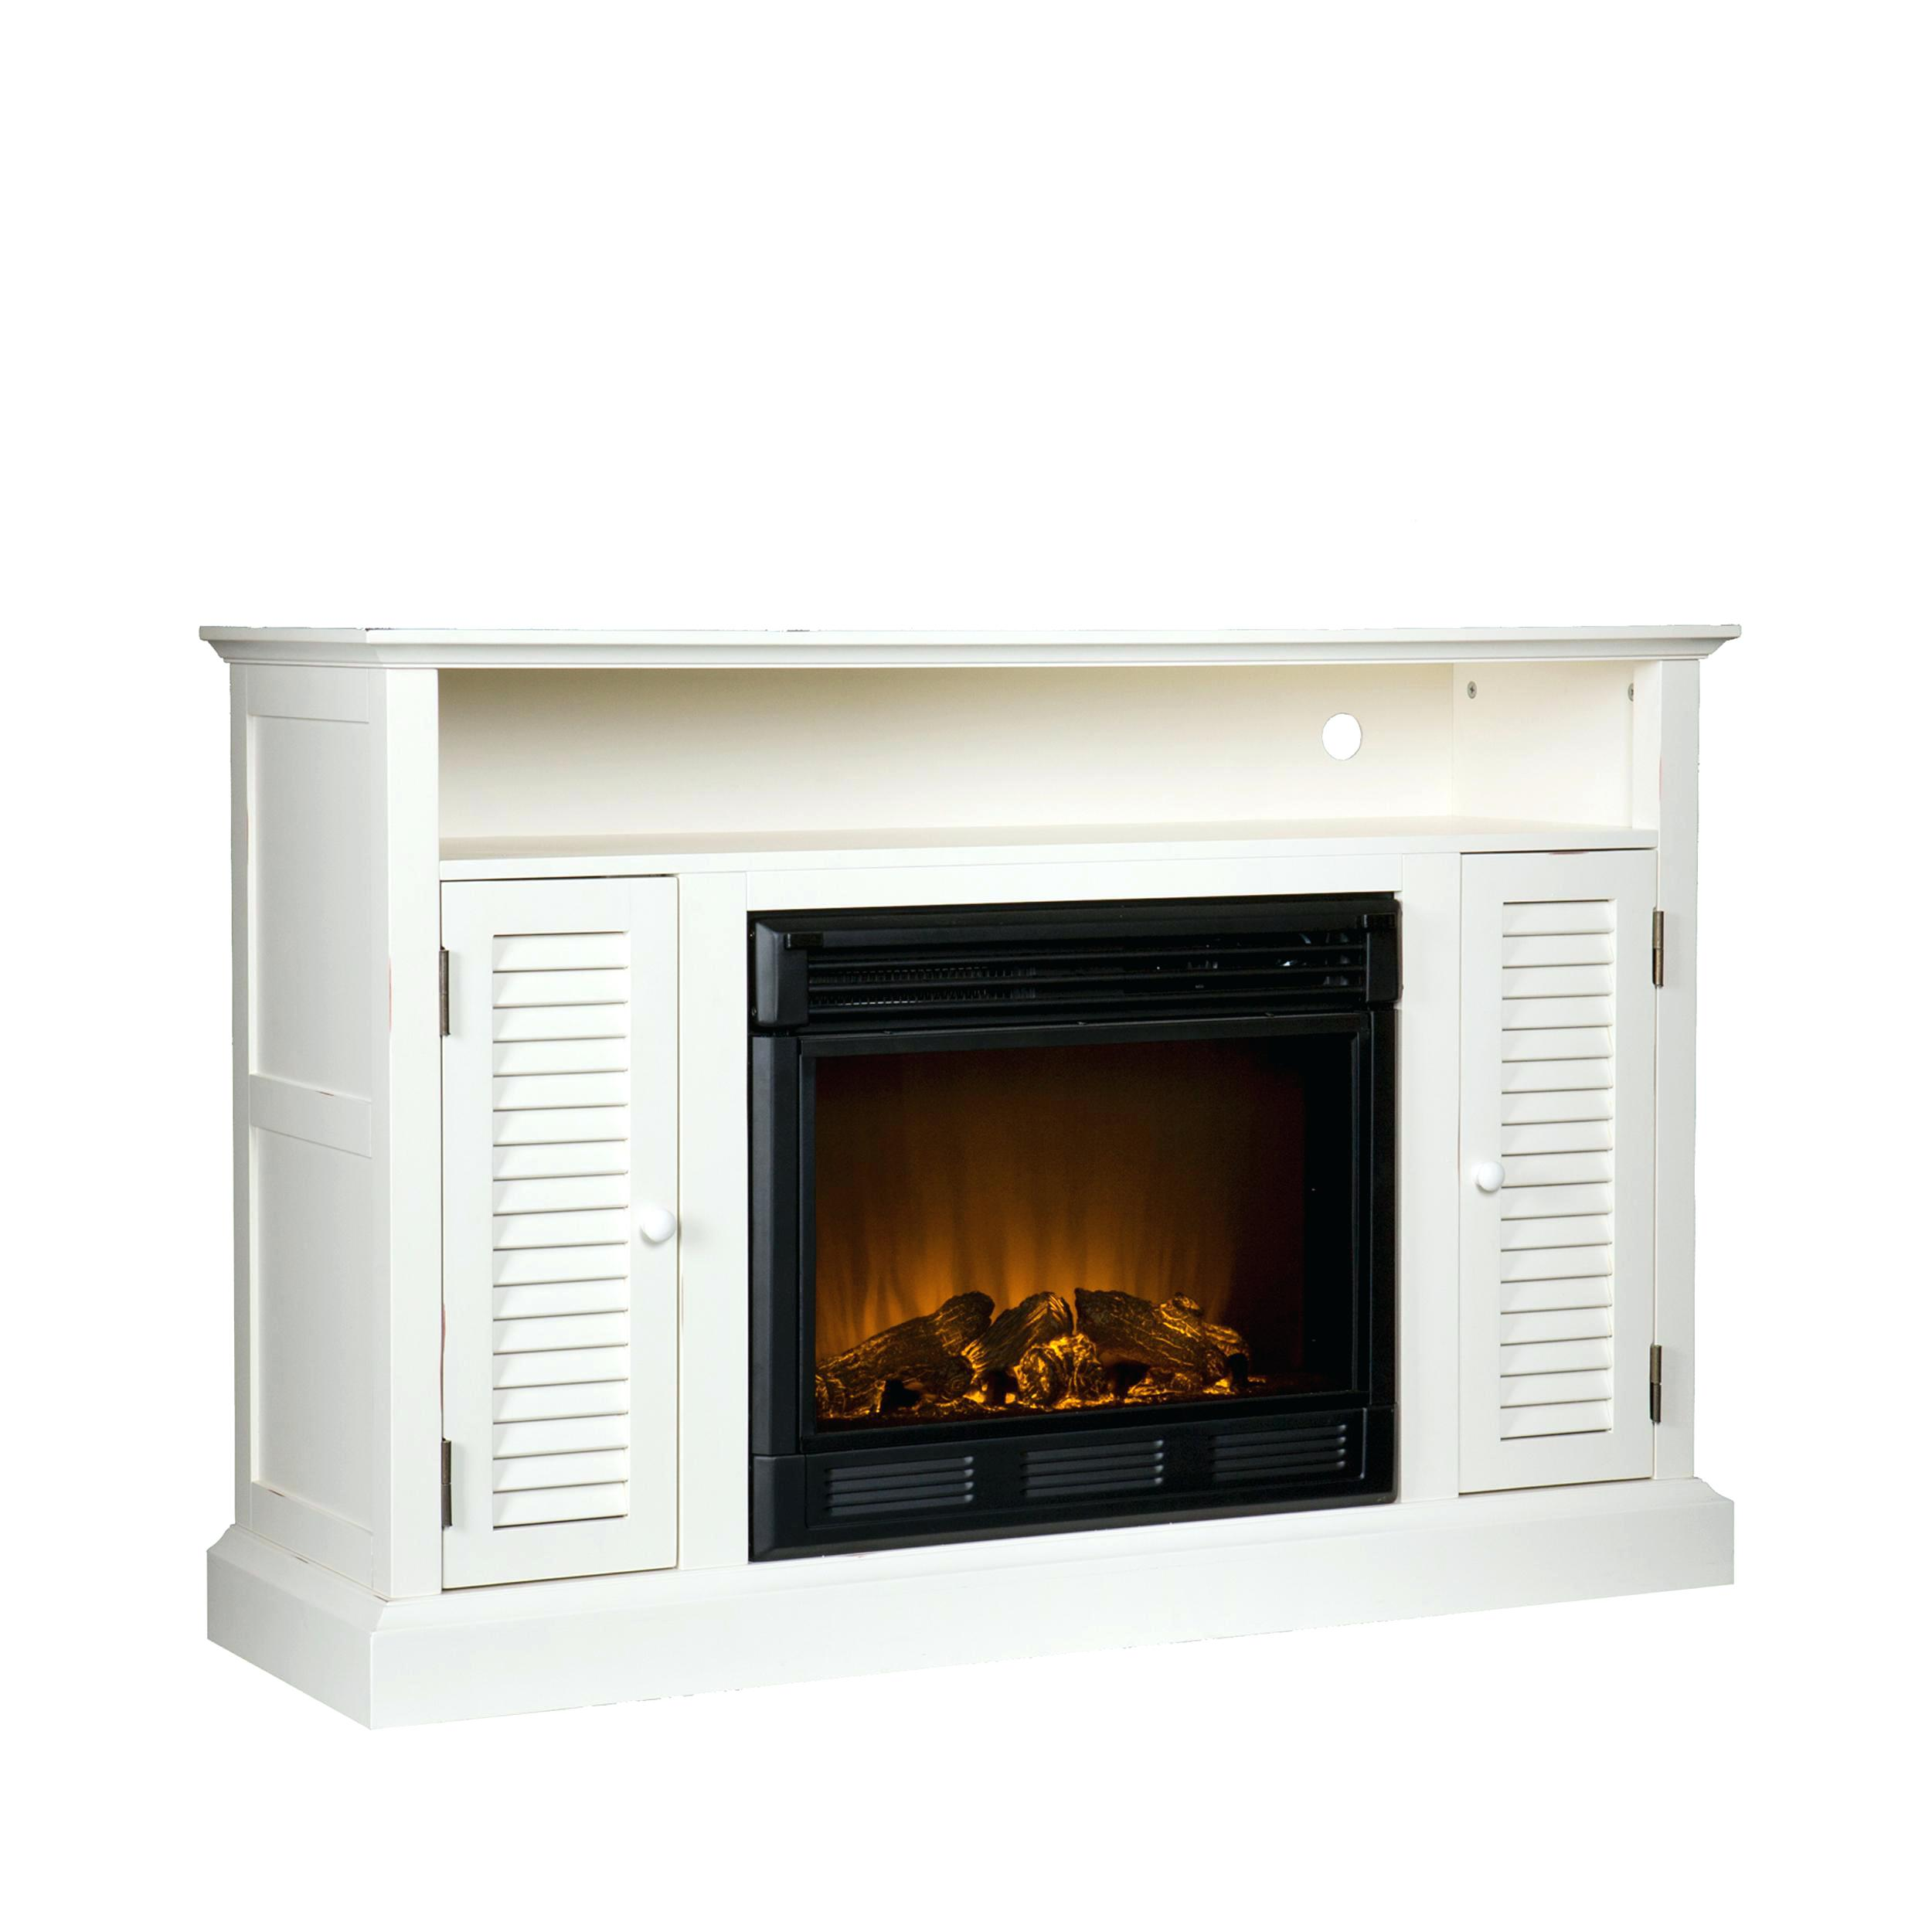 nice image lowes fireplaces design ideas for modern living room decor in white color option plus lowes gas logs and fireplace gas valve propane logs fake logs for gas fireplace emberglow gas logs vent